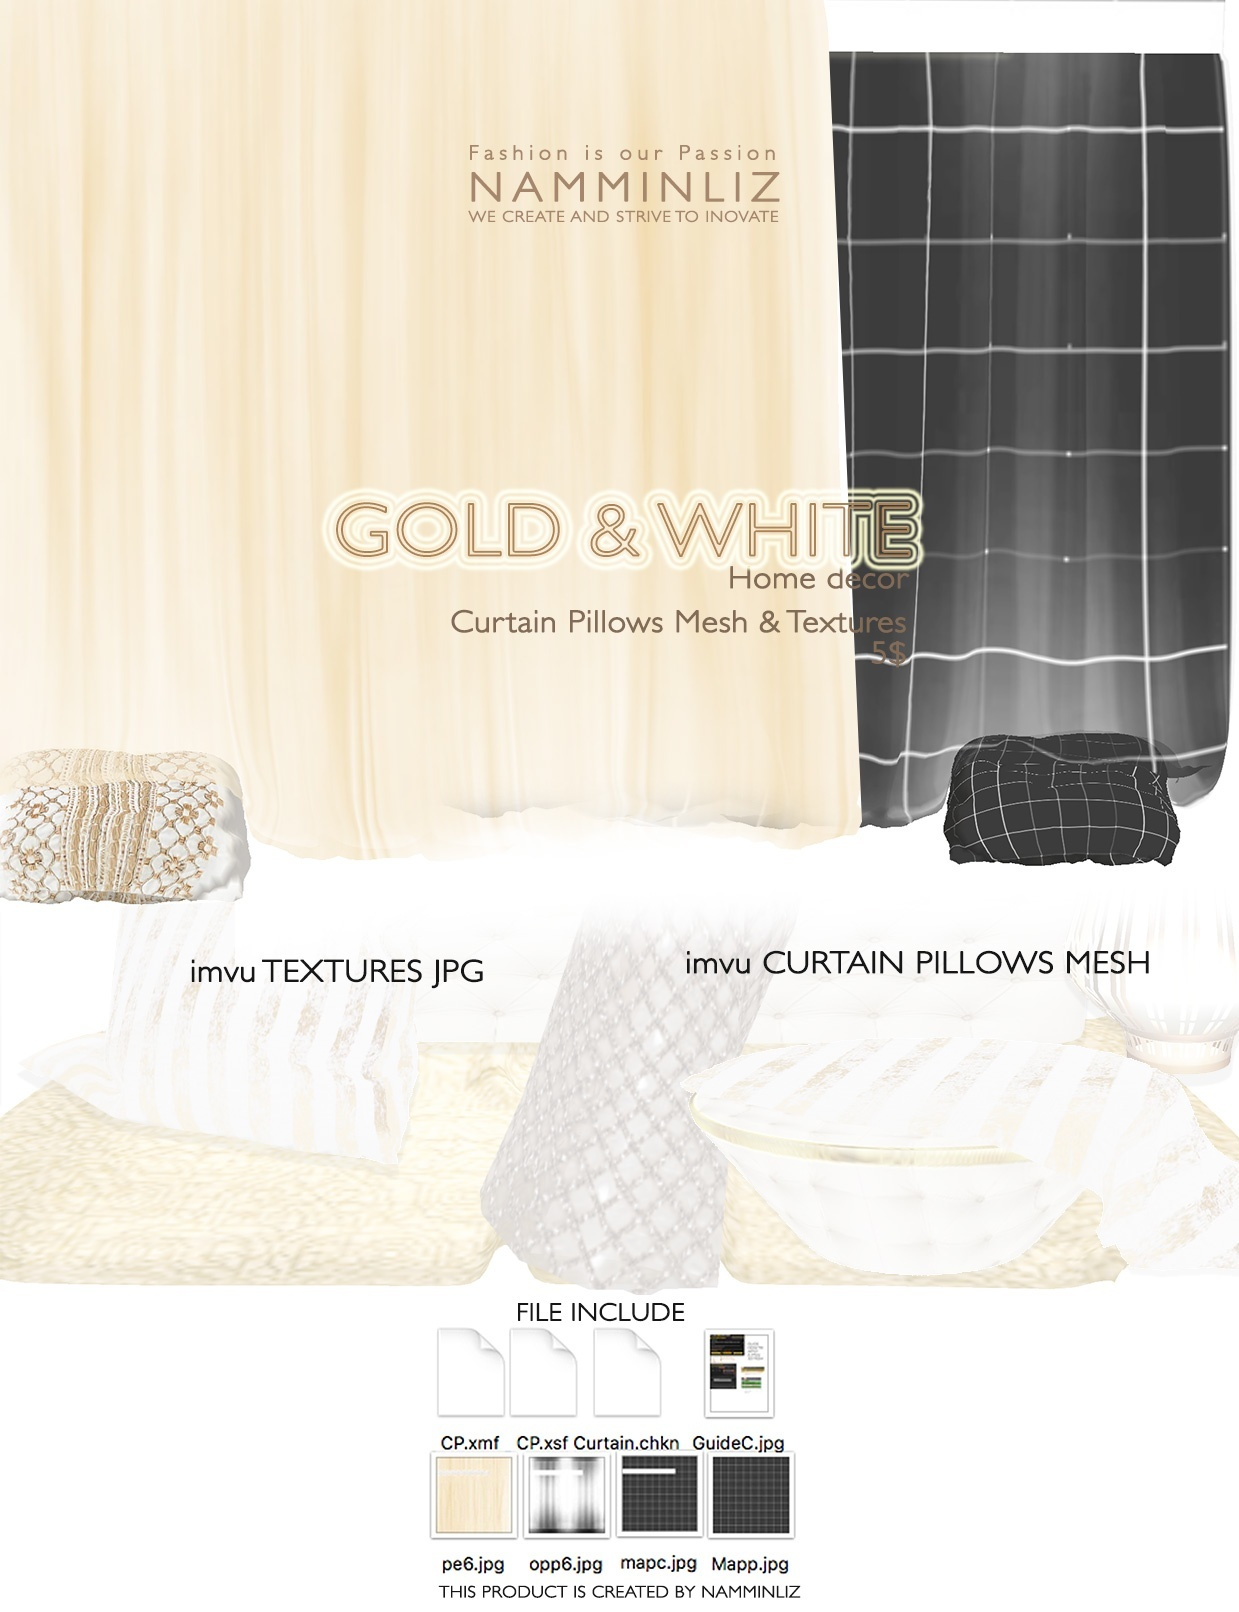 Gold & White imvu Curtain Pillow mesh & texture JPG, XSF, XMF, CHKN files